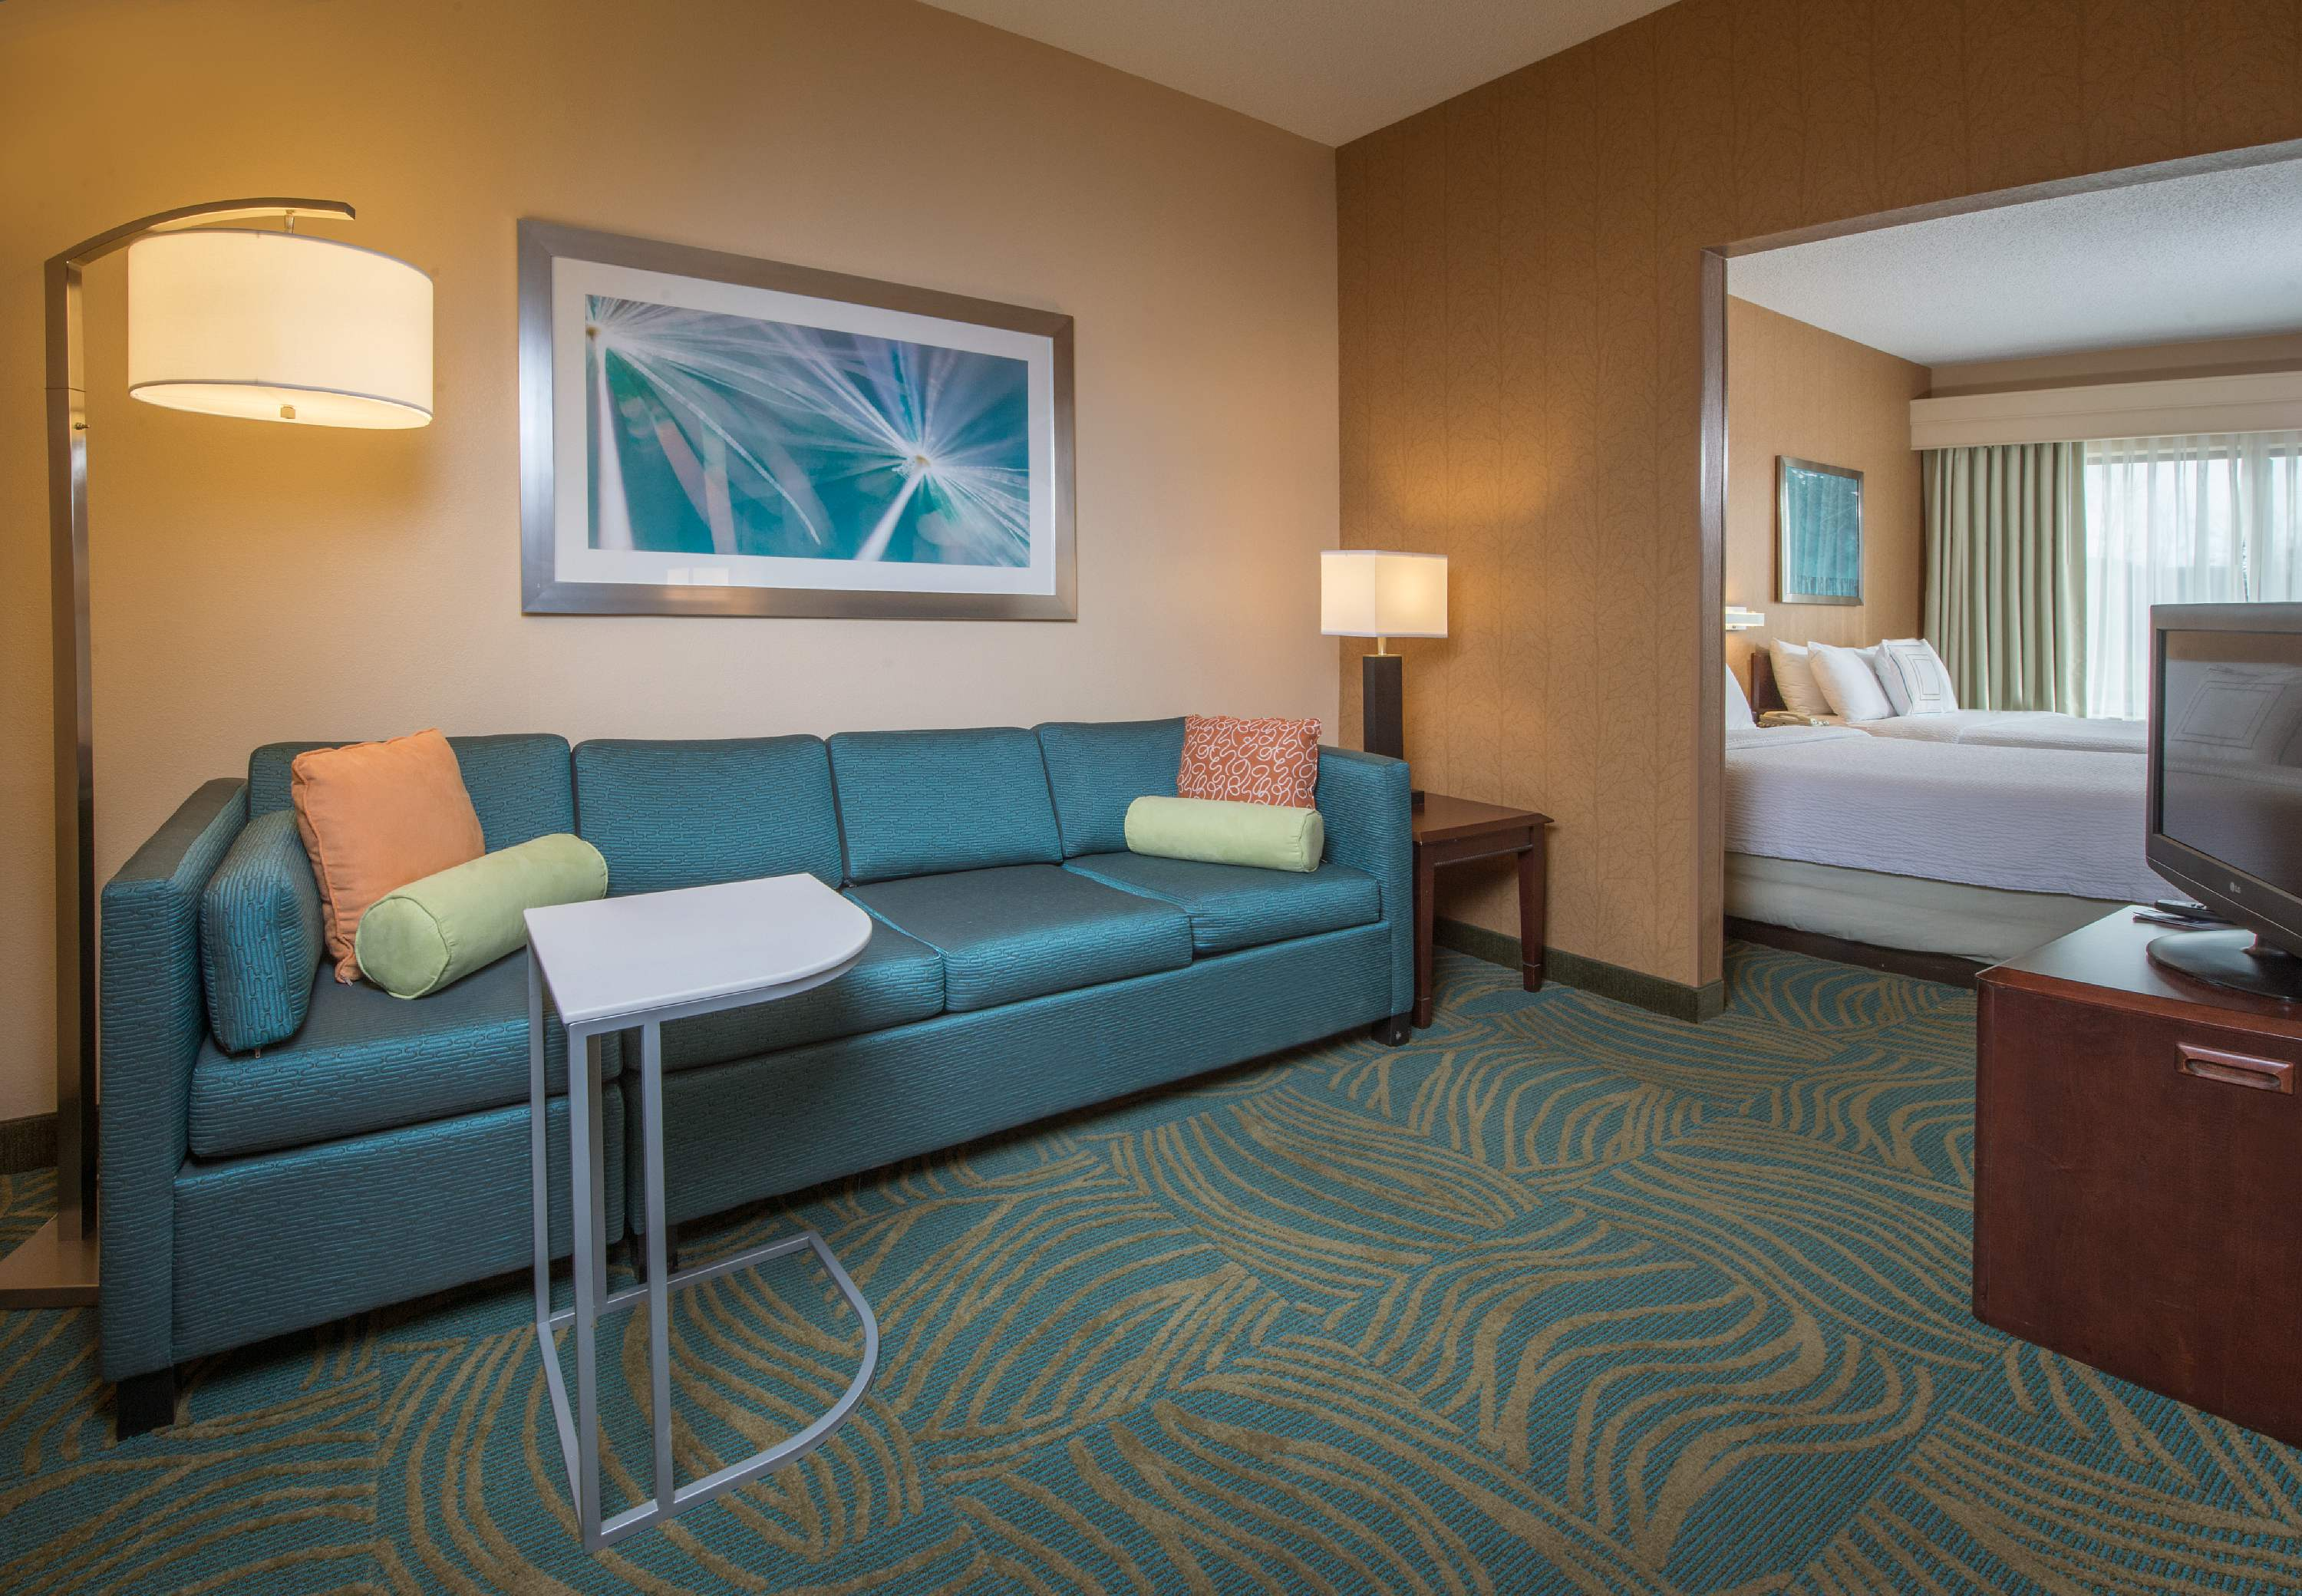 SpringHill Suites by Marriott Edgewood Aberdeen image 10